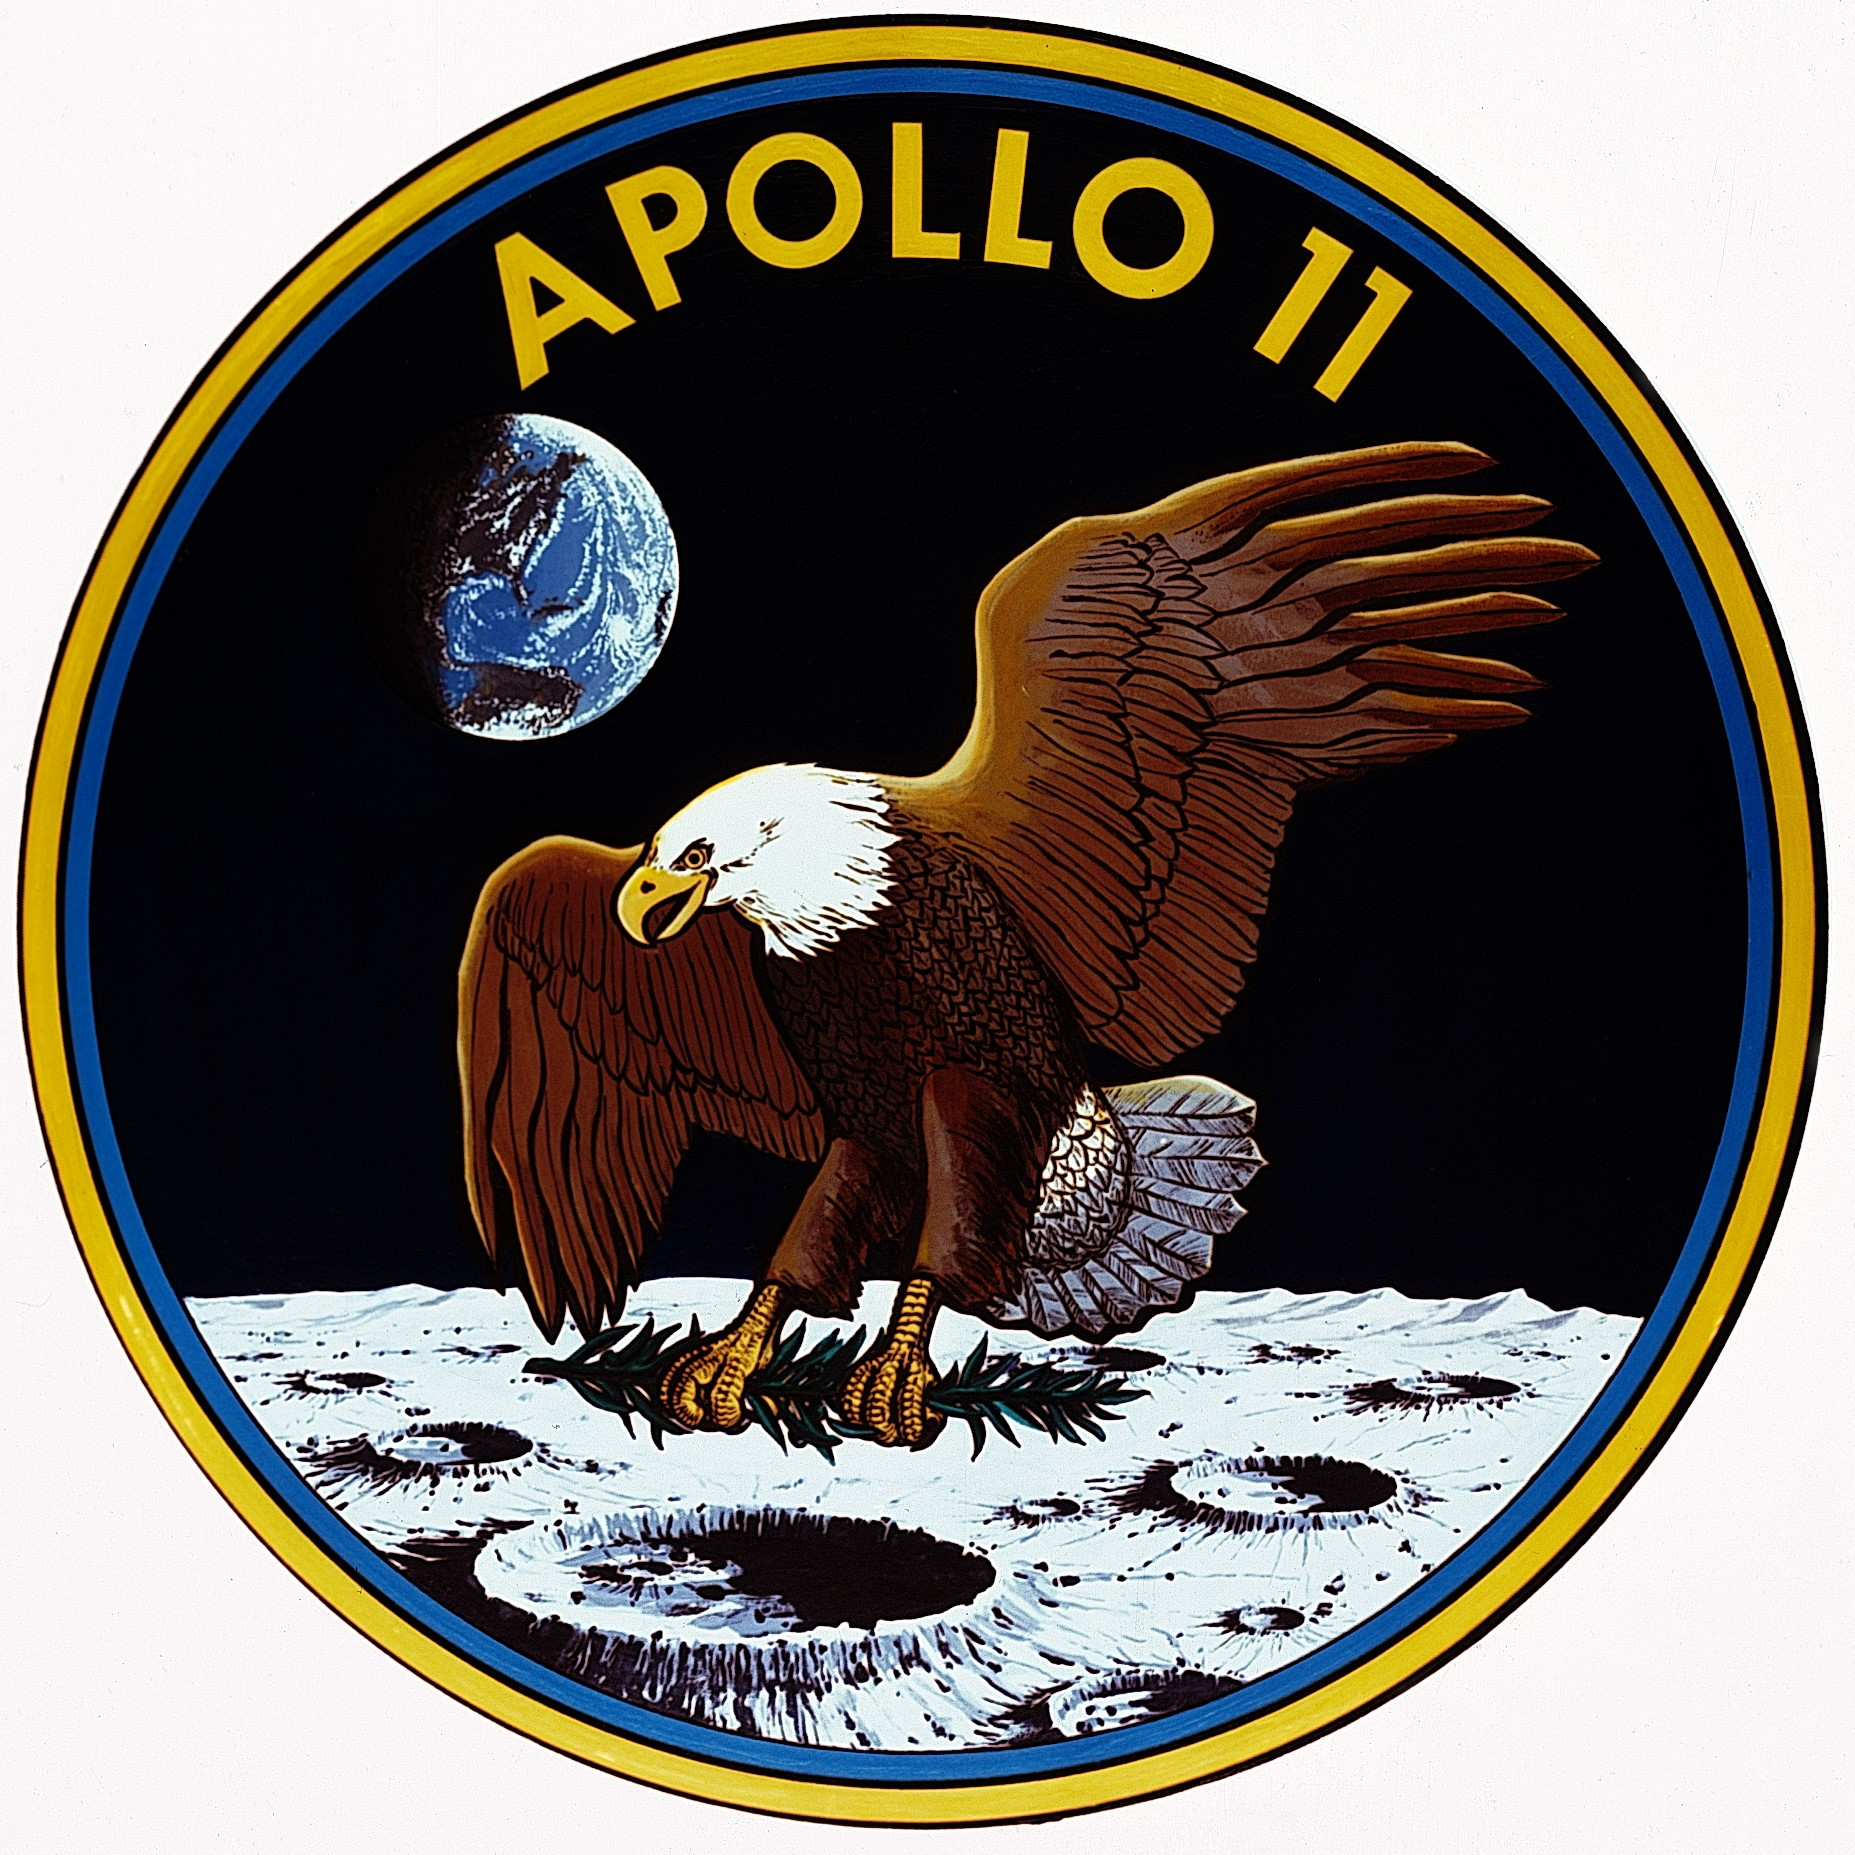 apollo 11 space mission pictures - photo #15